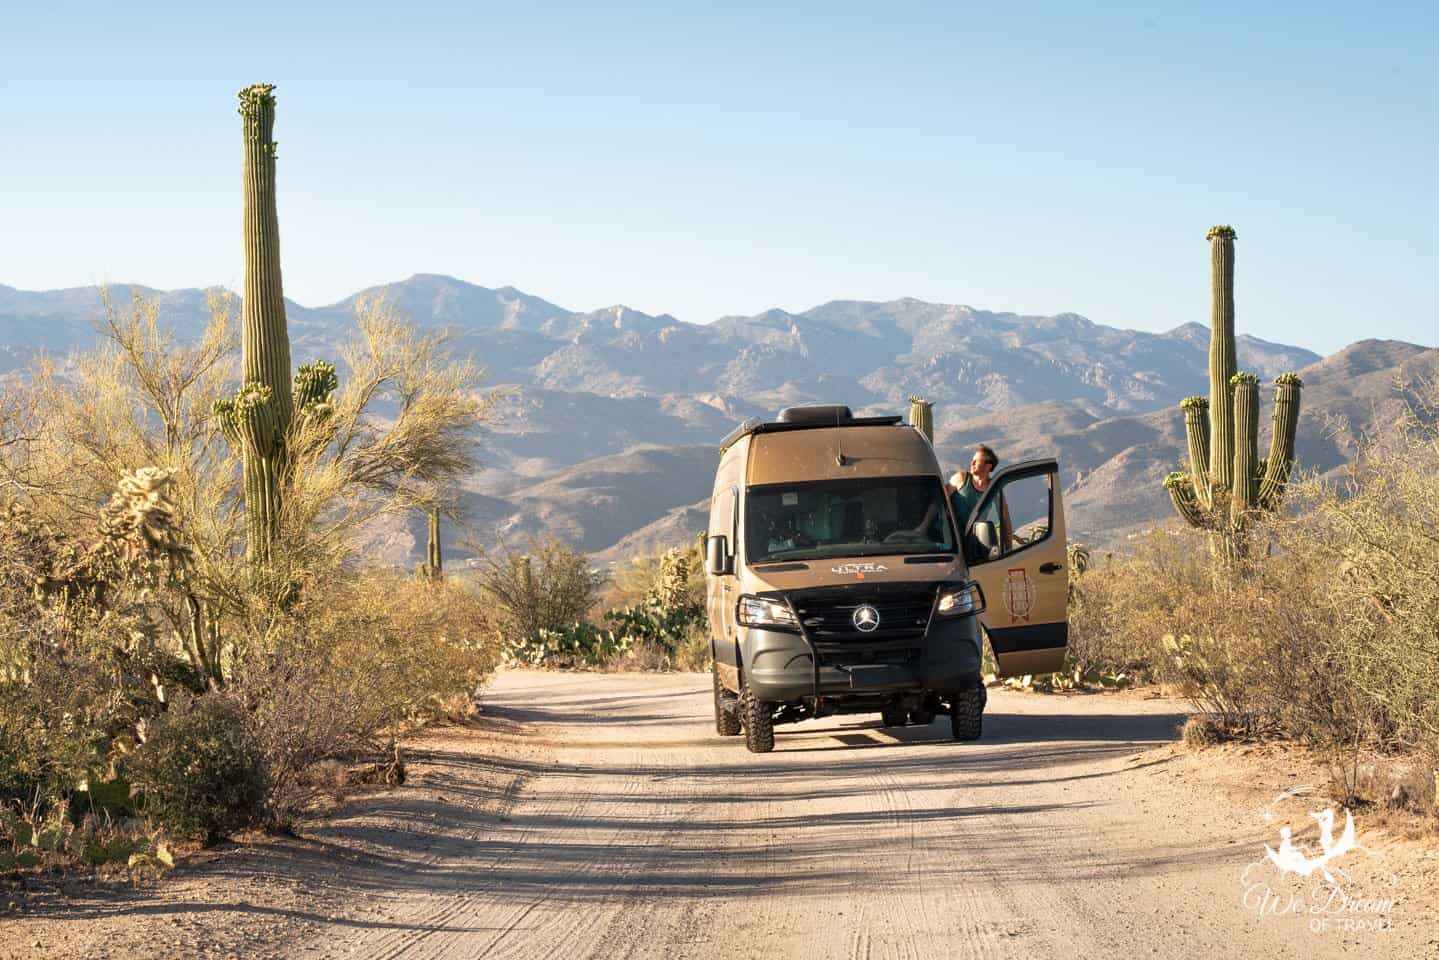 The cactus-lined dirt road to Mica View is a top sight in Saguaro National Park.